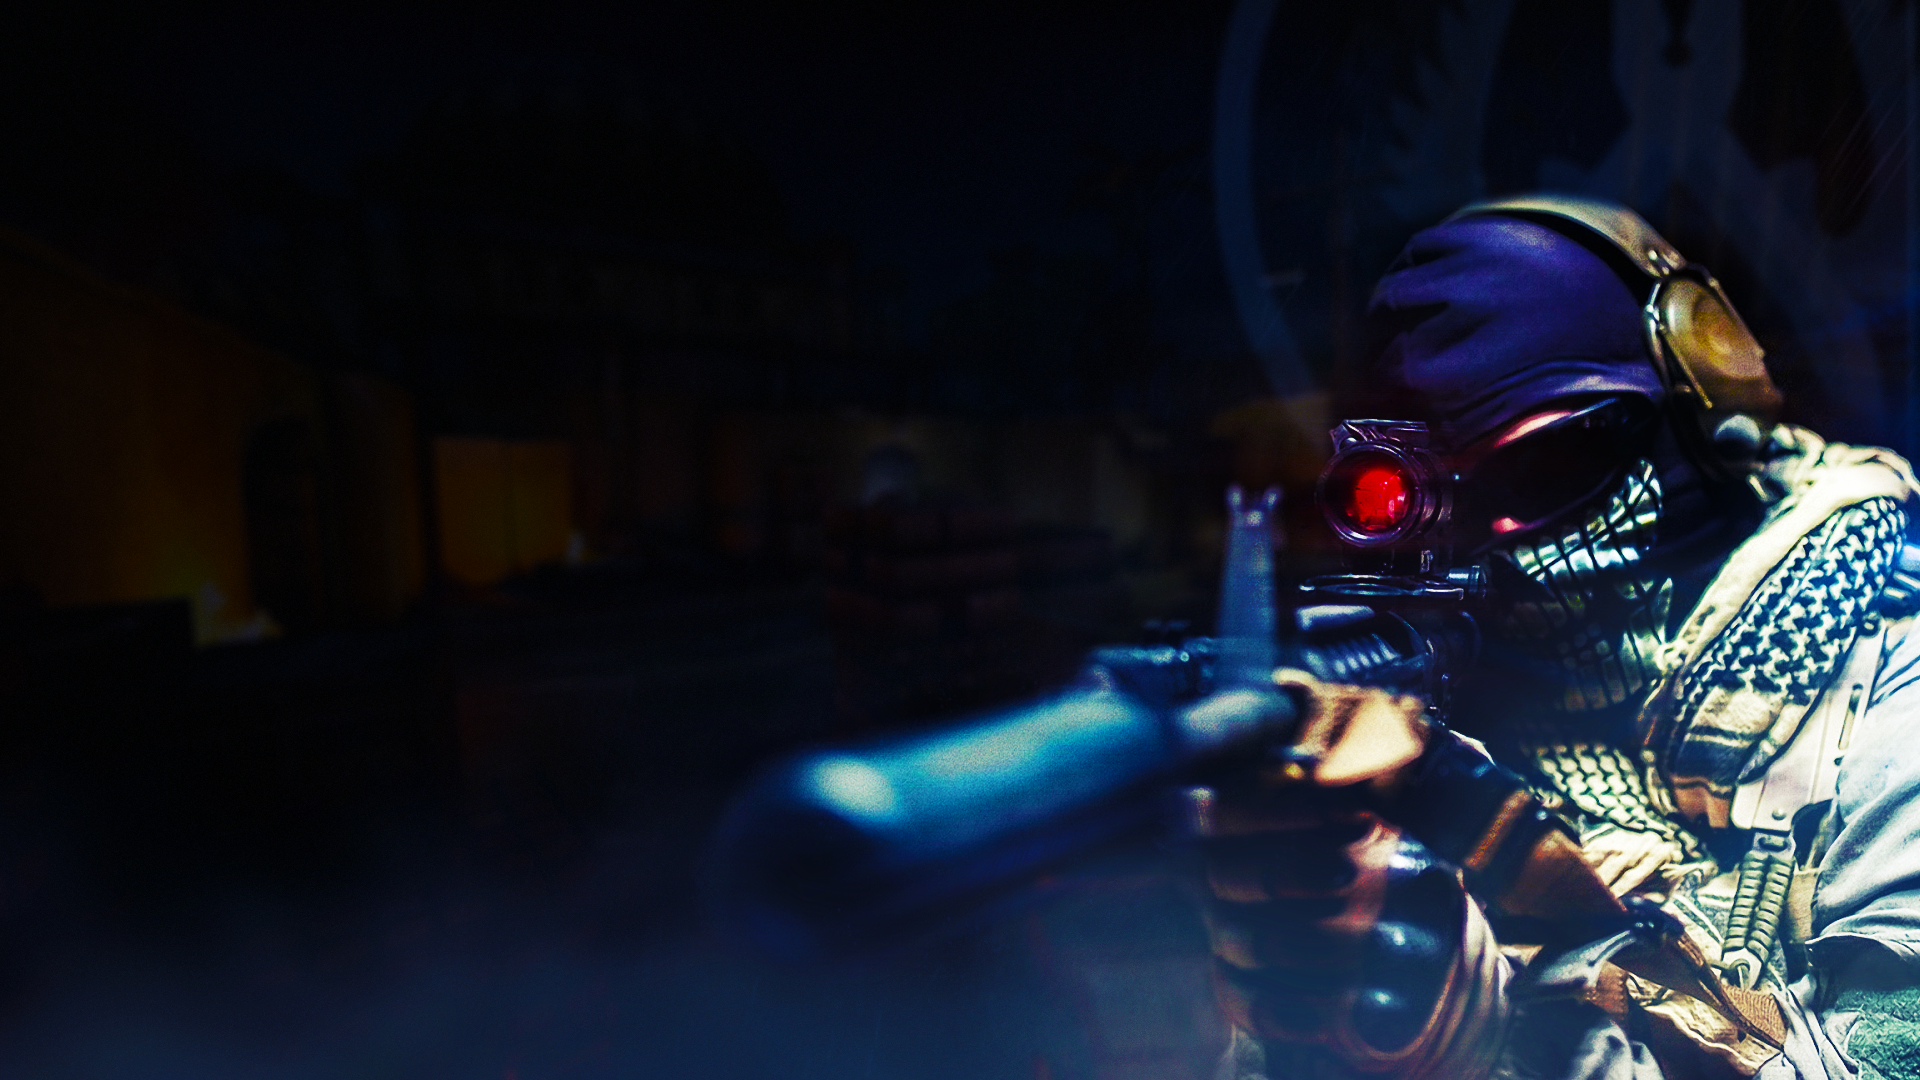 Counter Strike Global Offensive Wallpaper by Kothanos 1920x1080